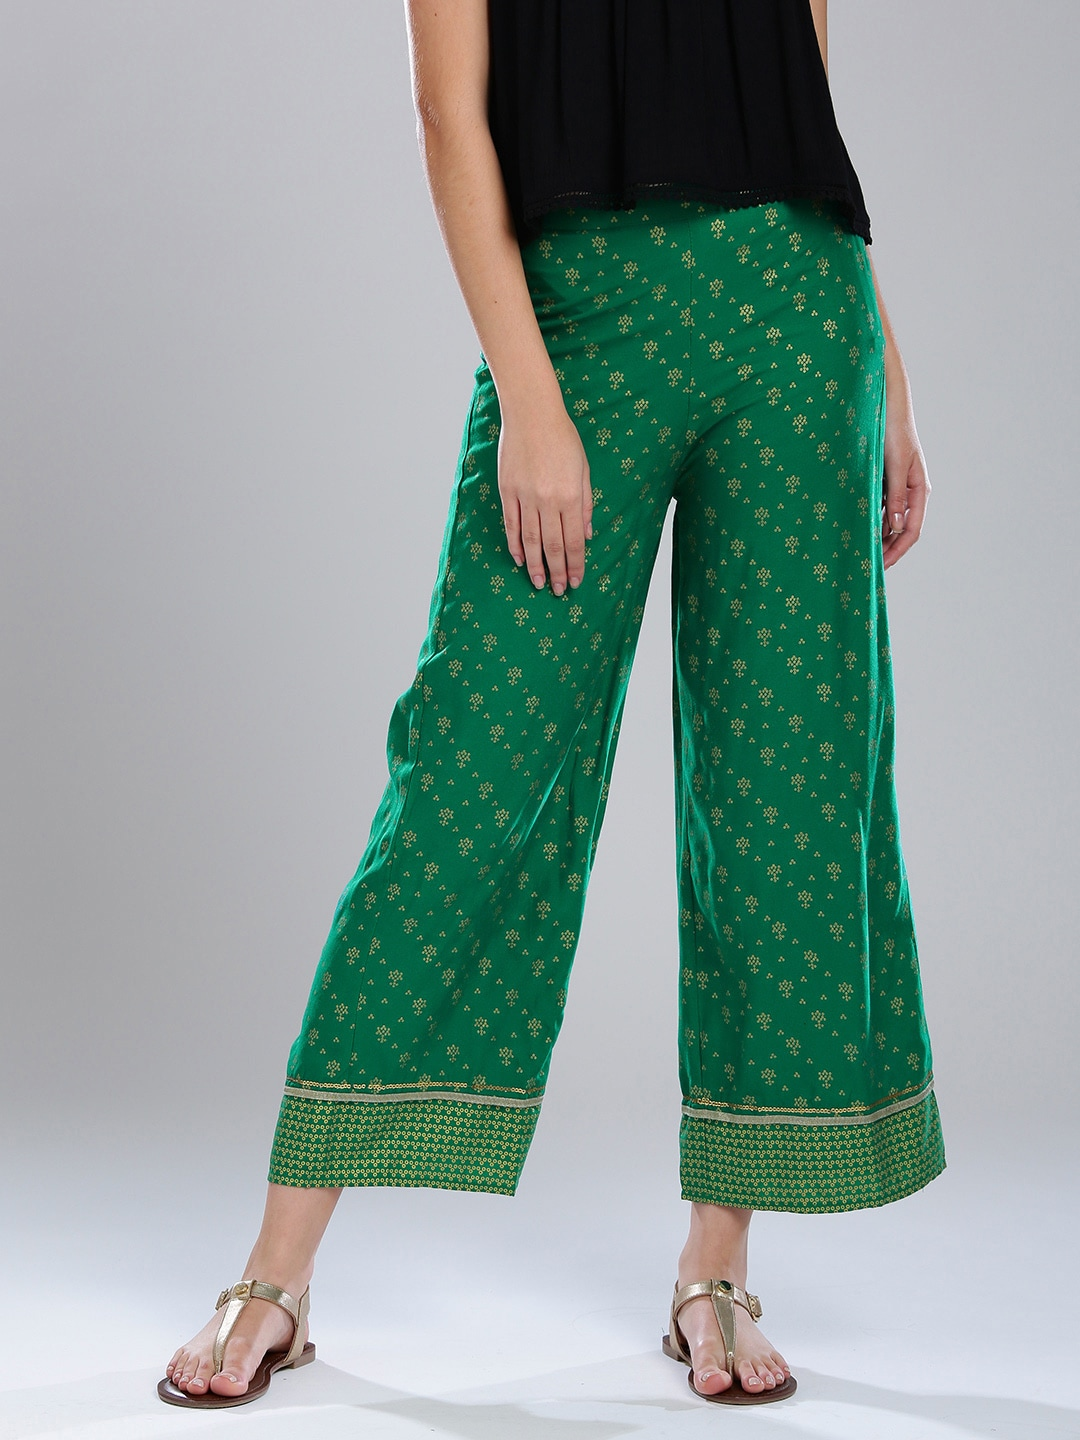 342d9c7ca937 W Palazzos - Buy W Palazzos online in India